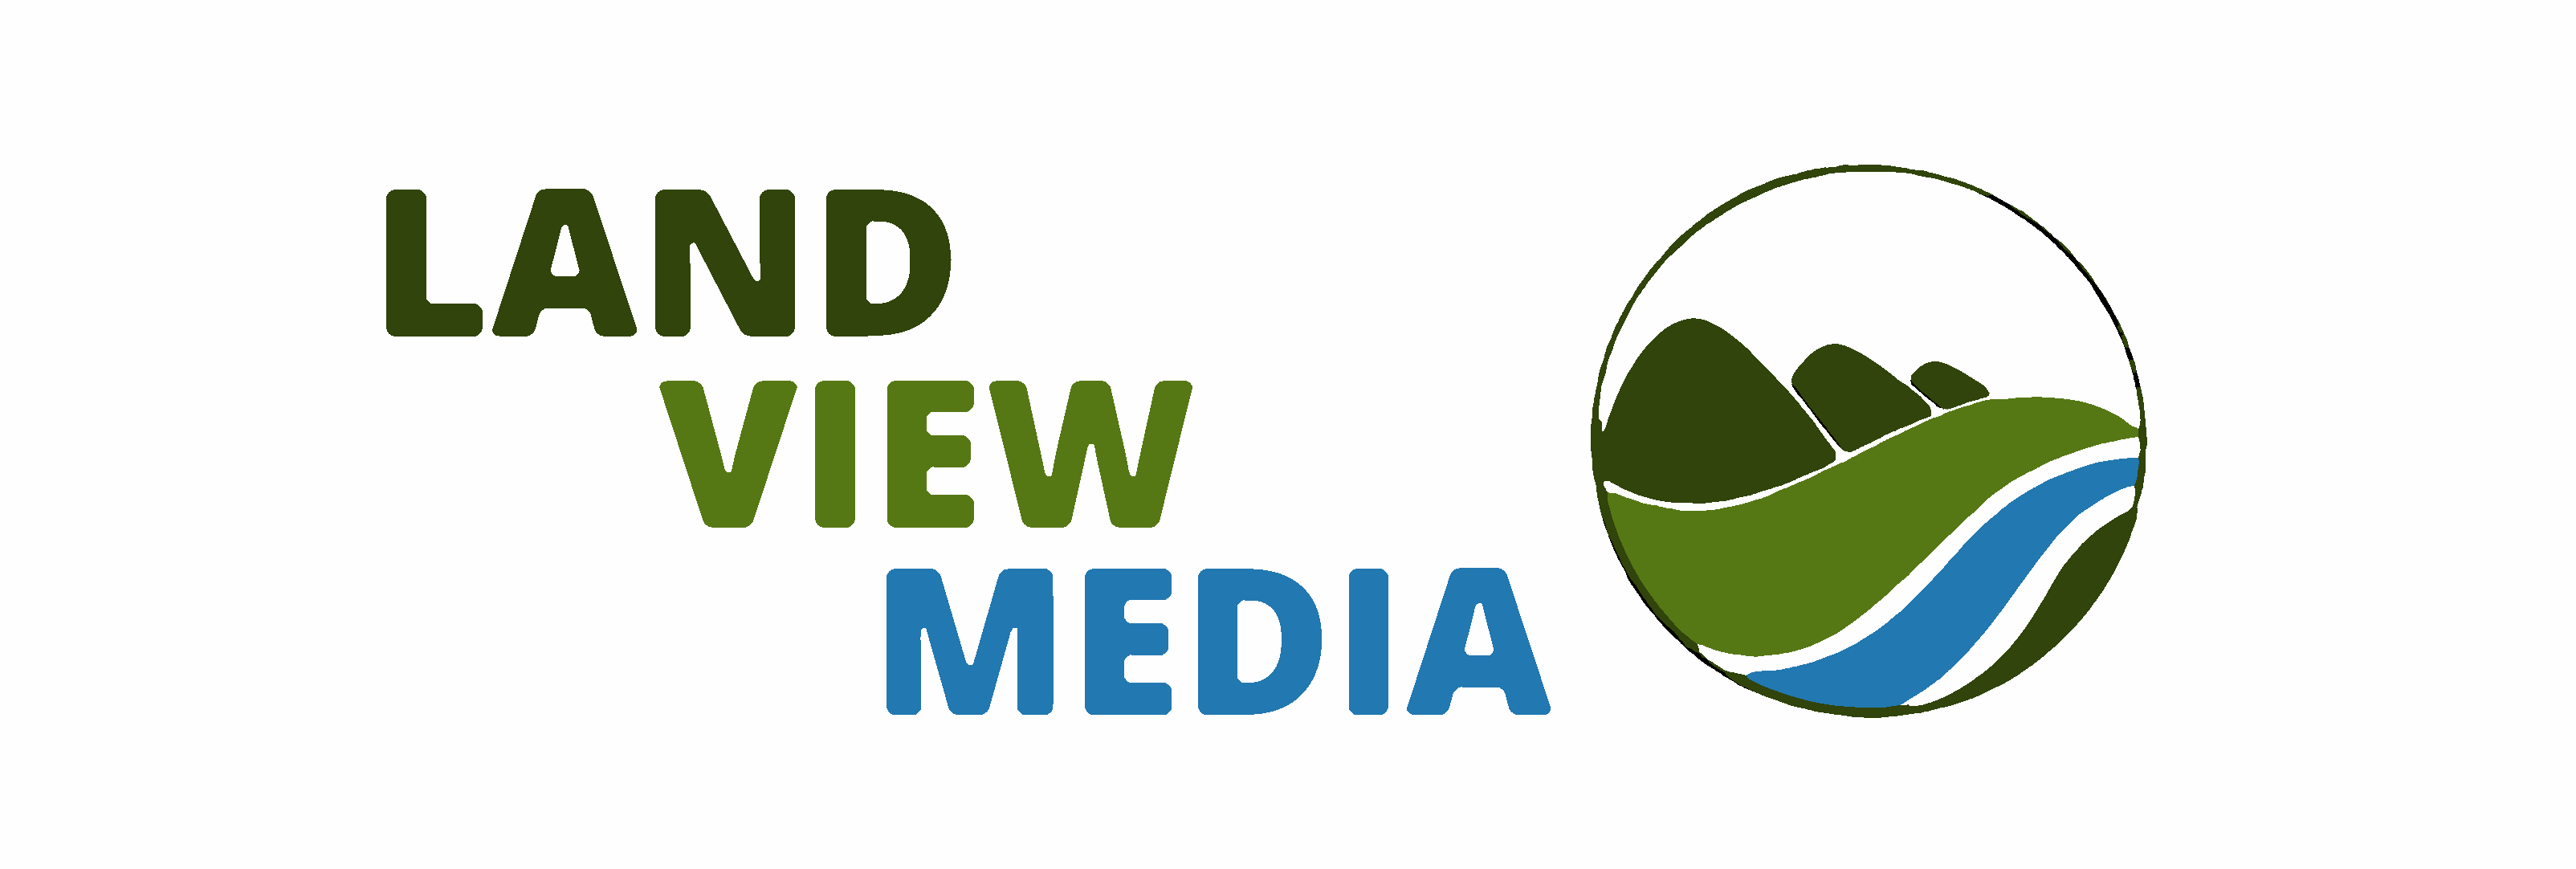 Land View Media